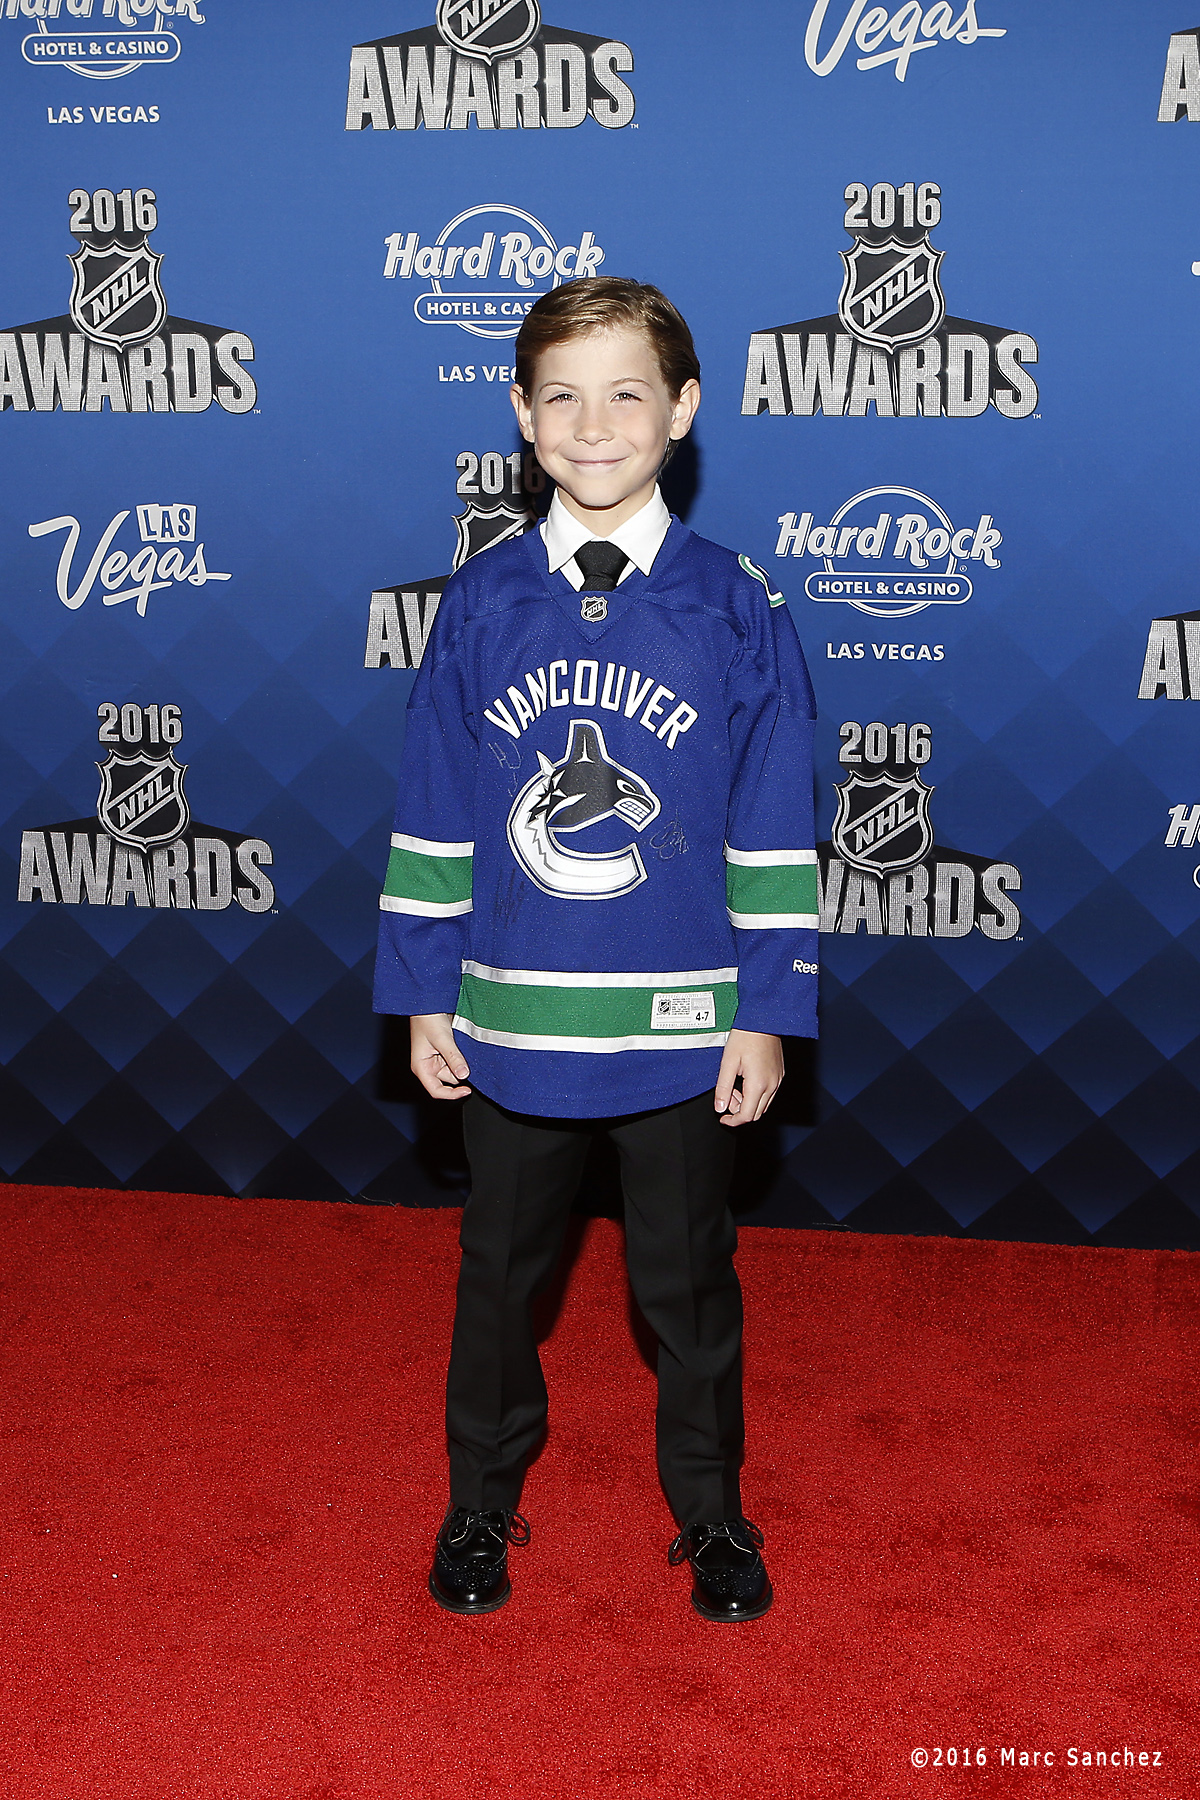 2016 June 22: Actor Jacob Tremblay poses for a photograph on hte red carpet during the 2016 NHL Awards at the Hard Rock Hotel and Casino in Las Vegas, Nevada. (Photo by Marc Sanchez/Icon Sportswire)